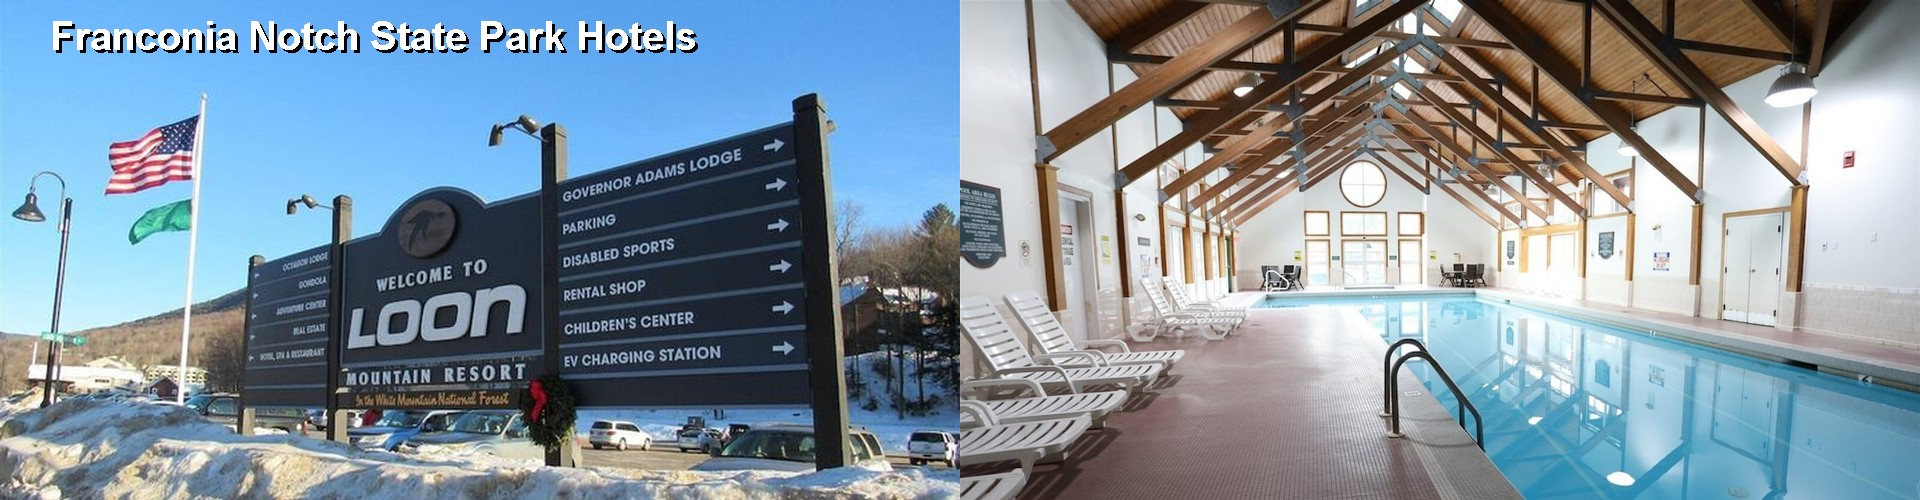 5 Best Hotels near Franconia Notch State Park